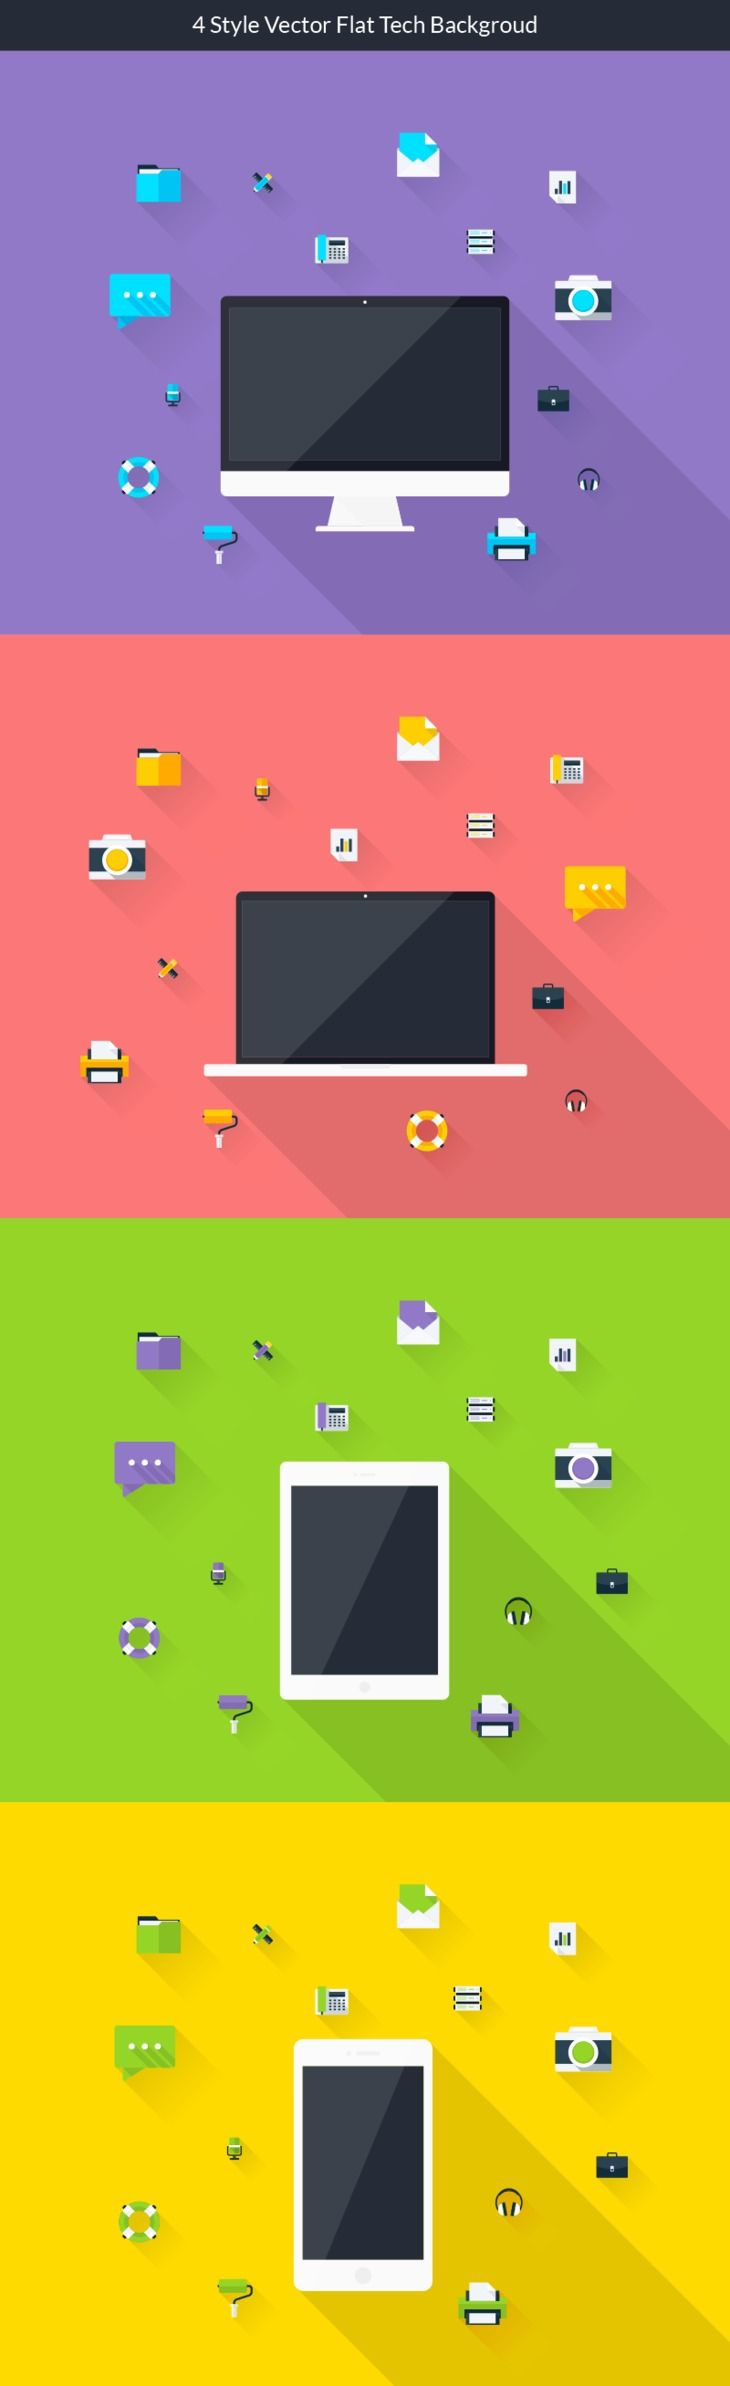 Flat Technology Backgrounds #FreeBackground from http://ortheme.com